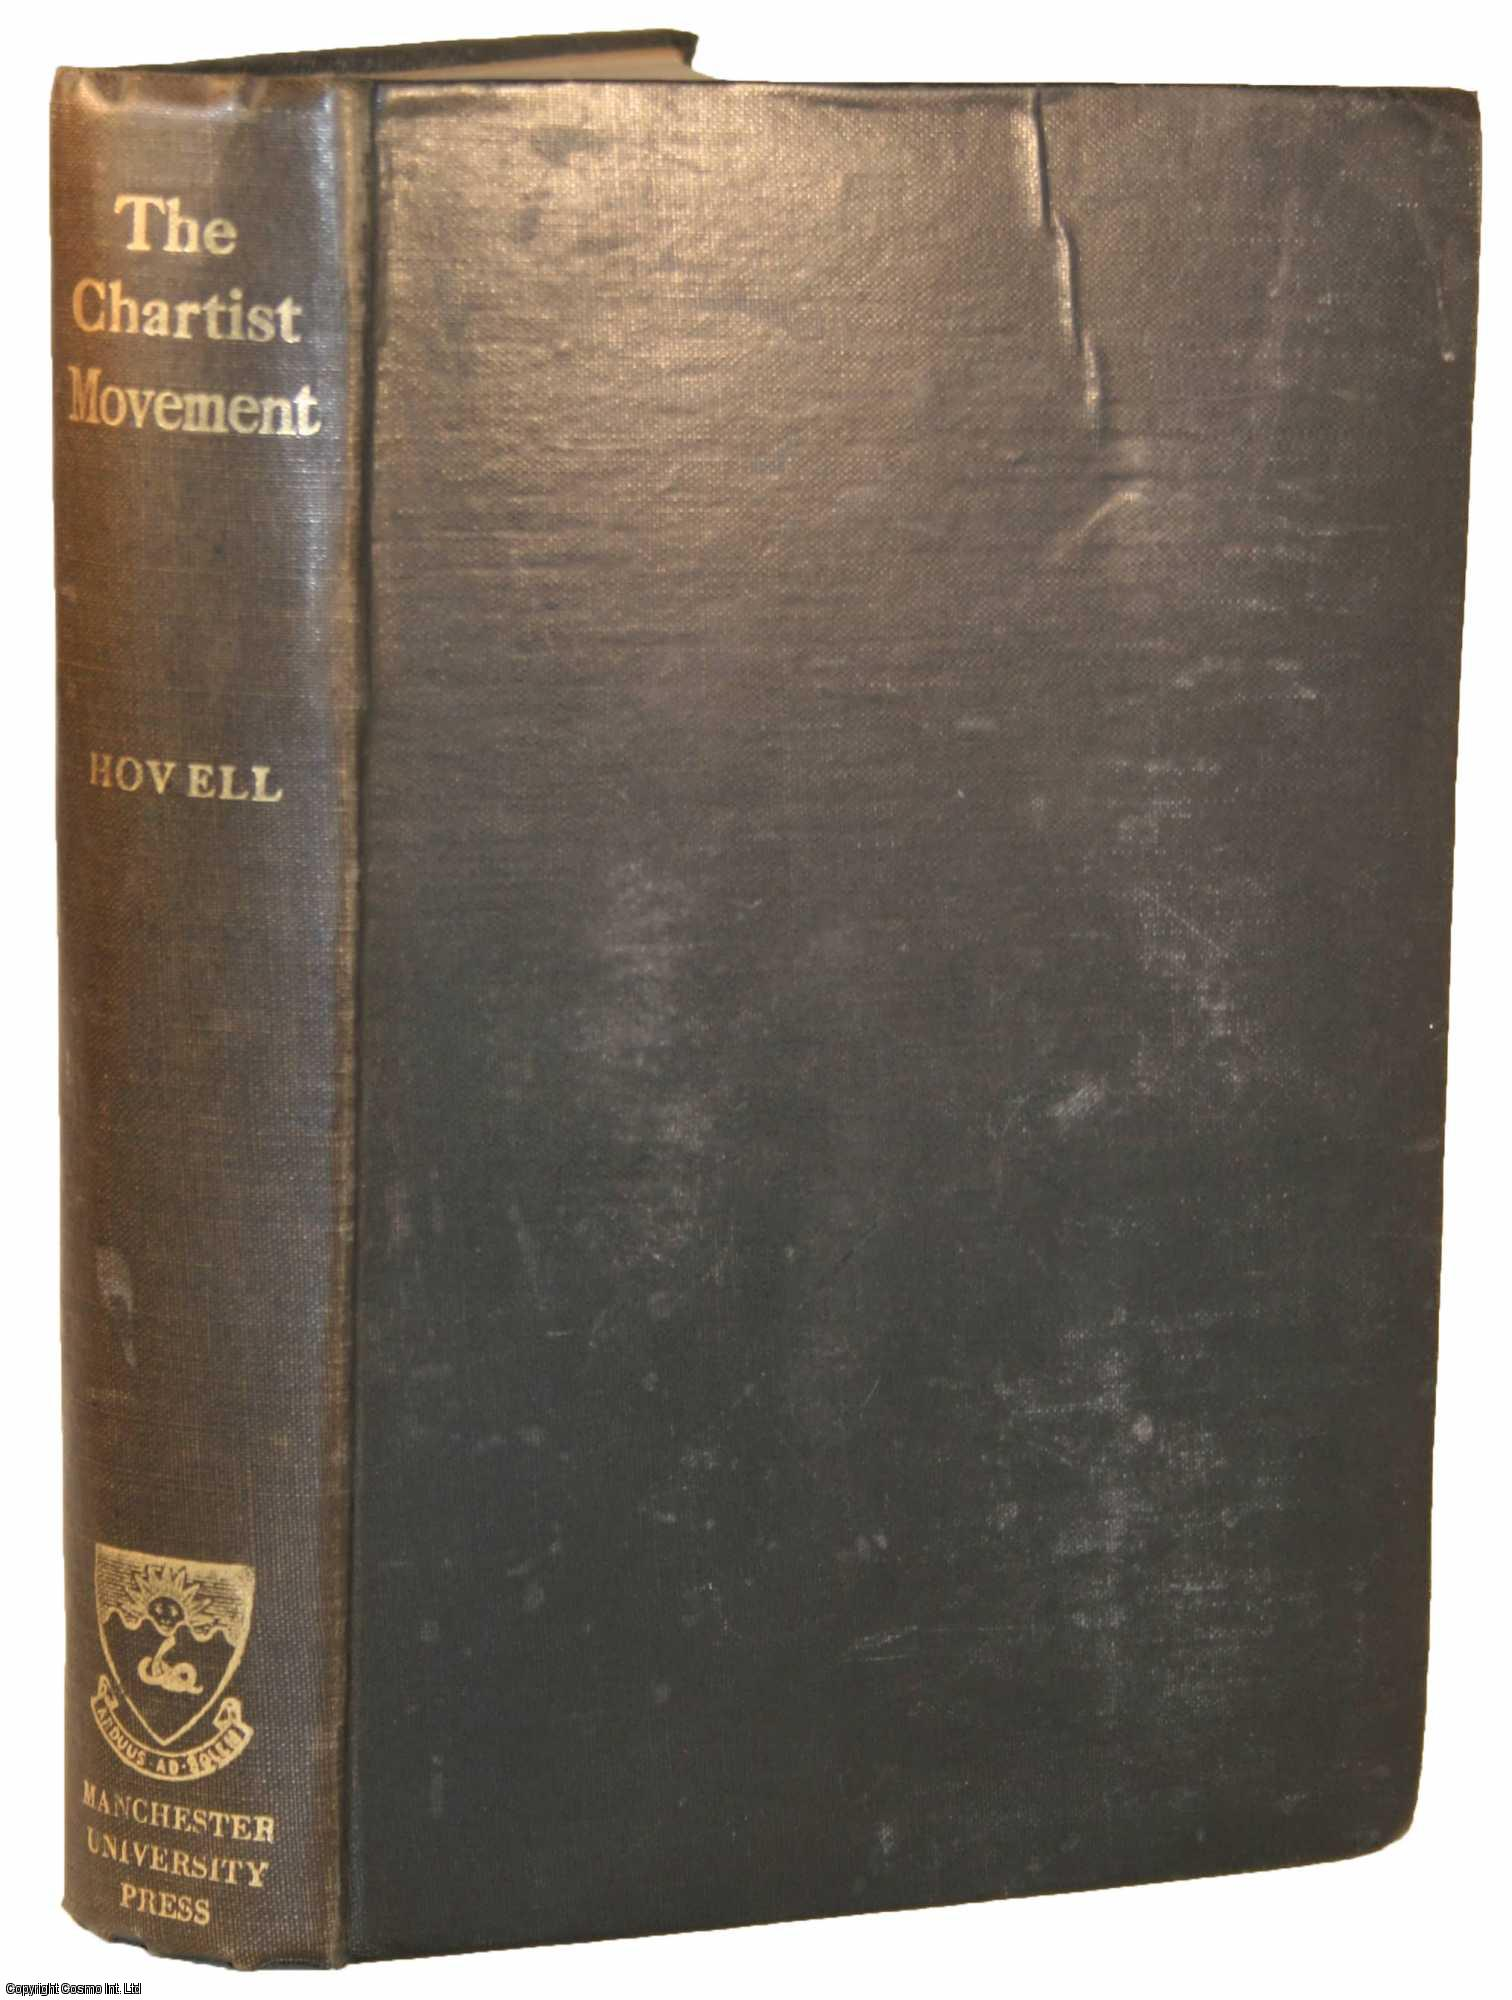 HOVELL, MARK - The Chartist Movement.